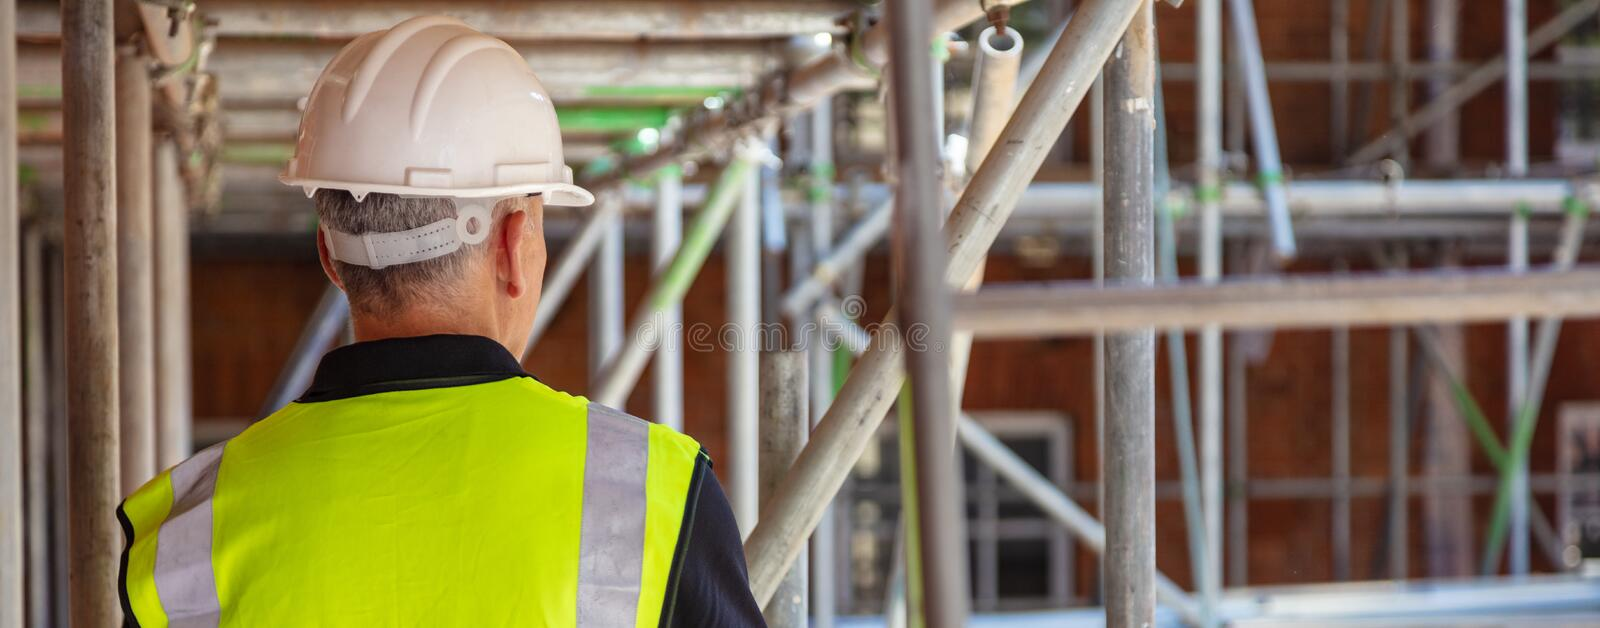 Rear View of a Construction Worker on Building Site. Rear view of male builder construction worker on building site wearing hard hat and hi-vis vest panoramic royalty free stock images